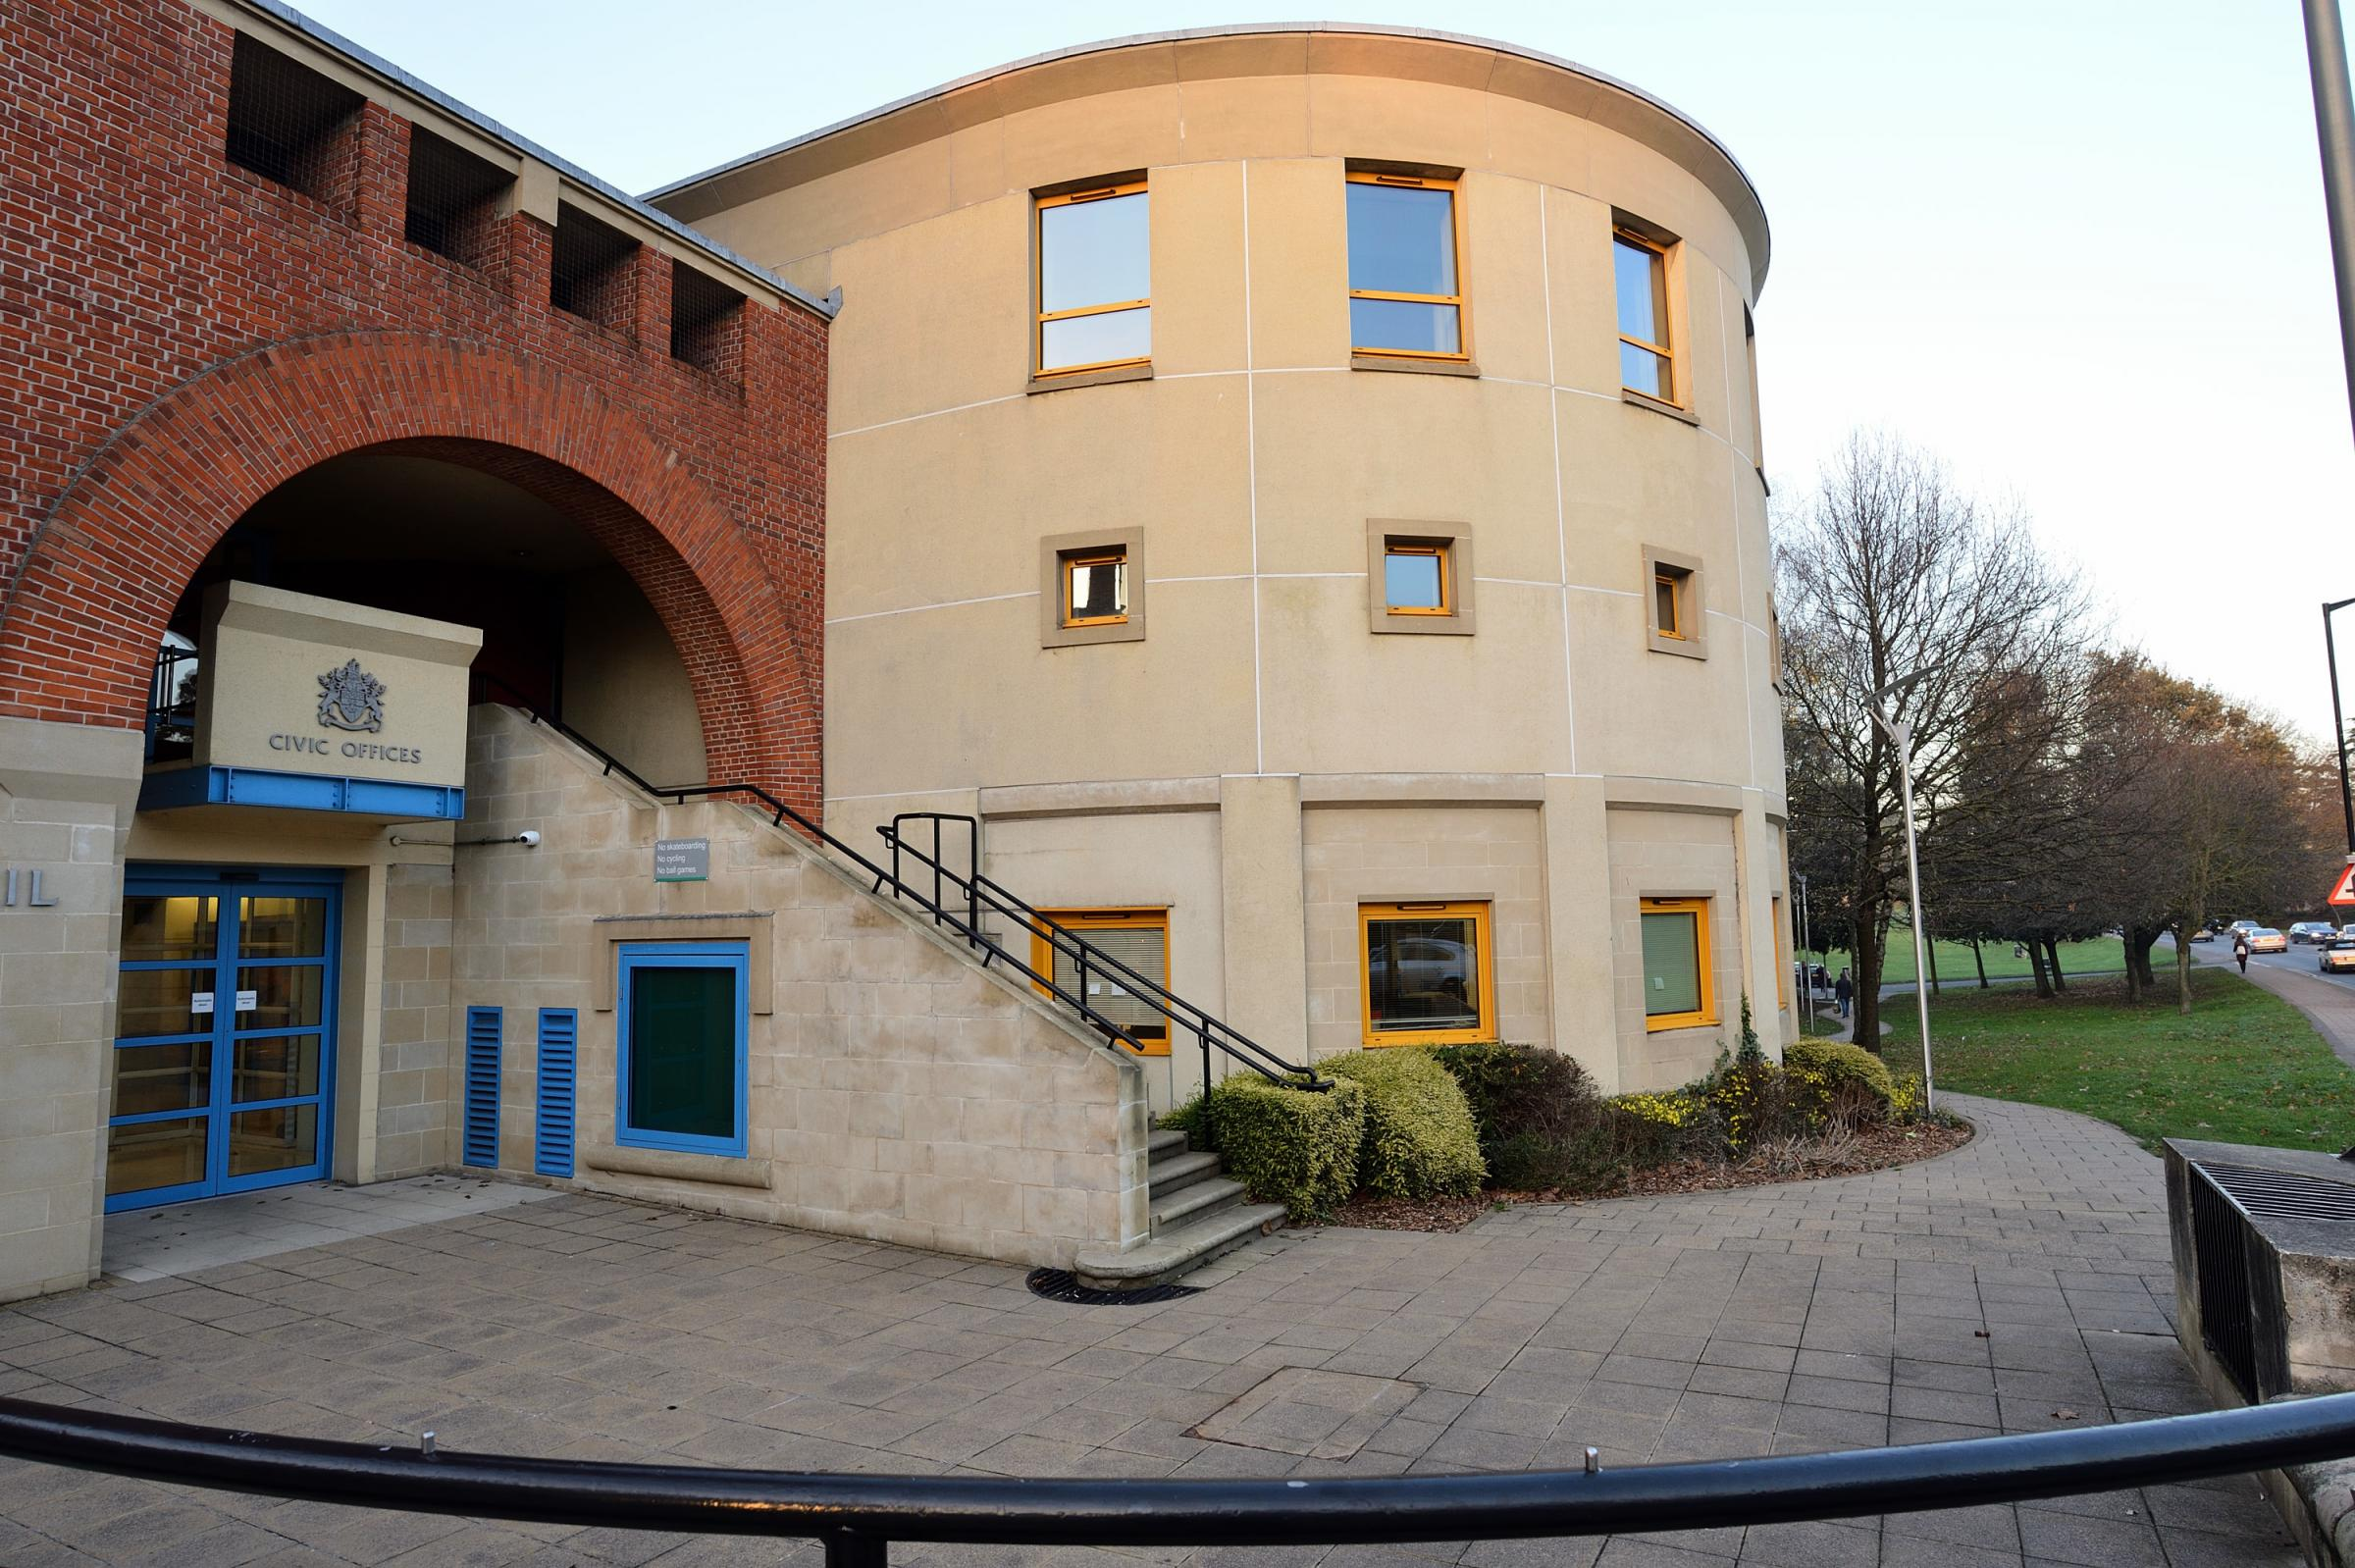 Epping Forest District Council Civic Offices. Eppng, Essex. (11-12-2018) EL92372_13.